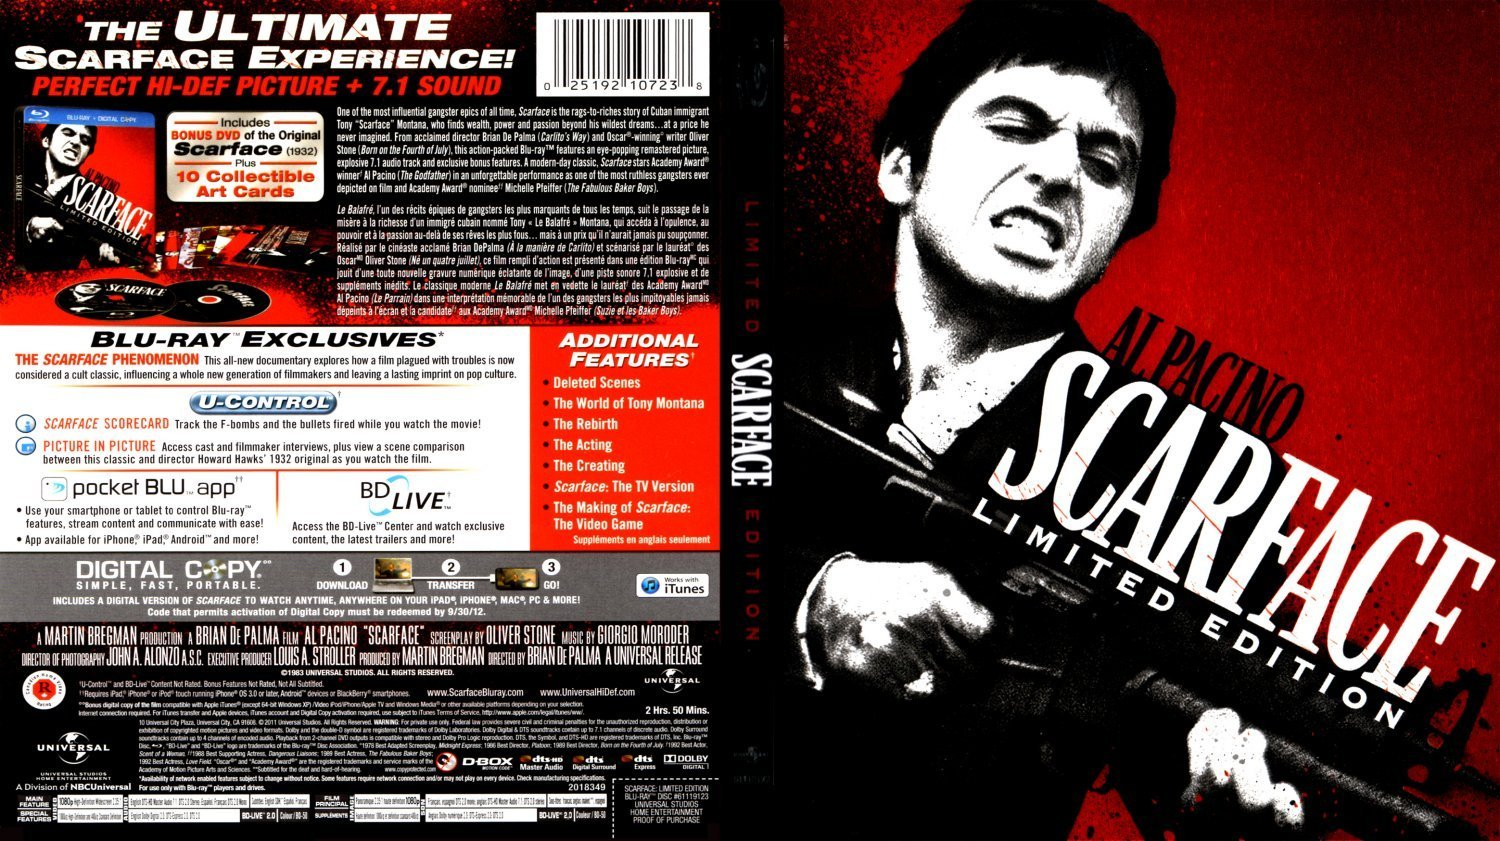 Scarface is Returning to Theaters for Its 35th Anniversary